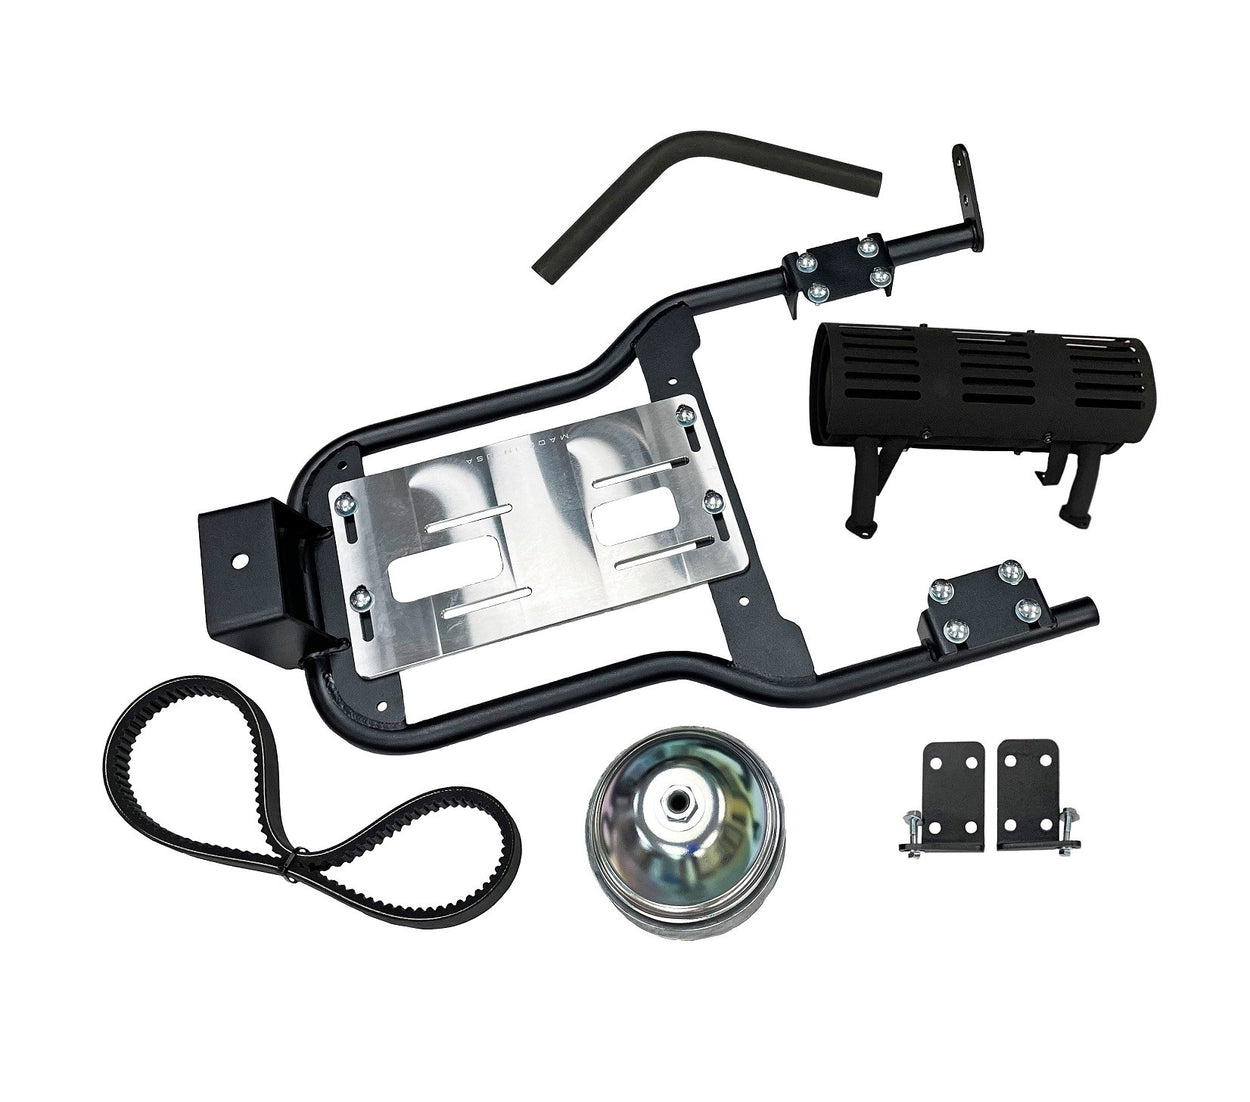 Predator 22hp Installation Kit for G29 Yamaha Golf Carts